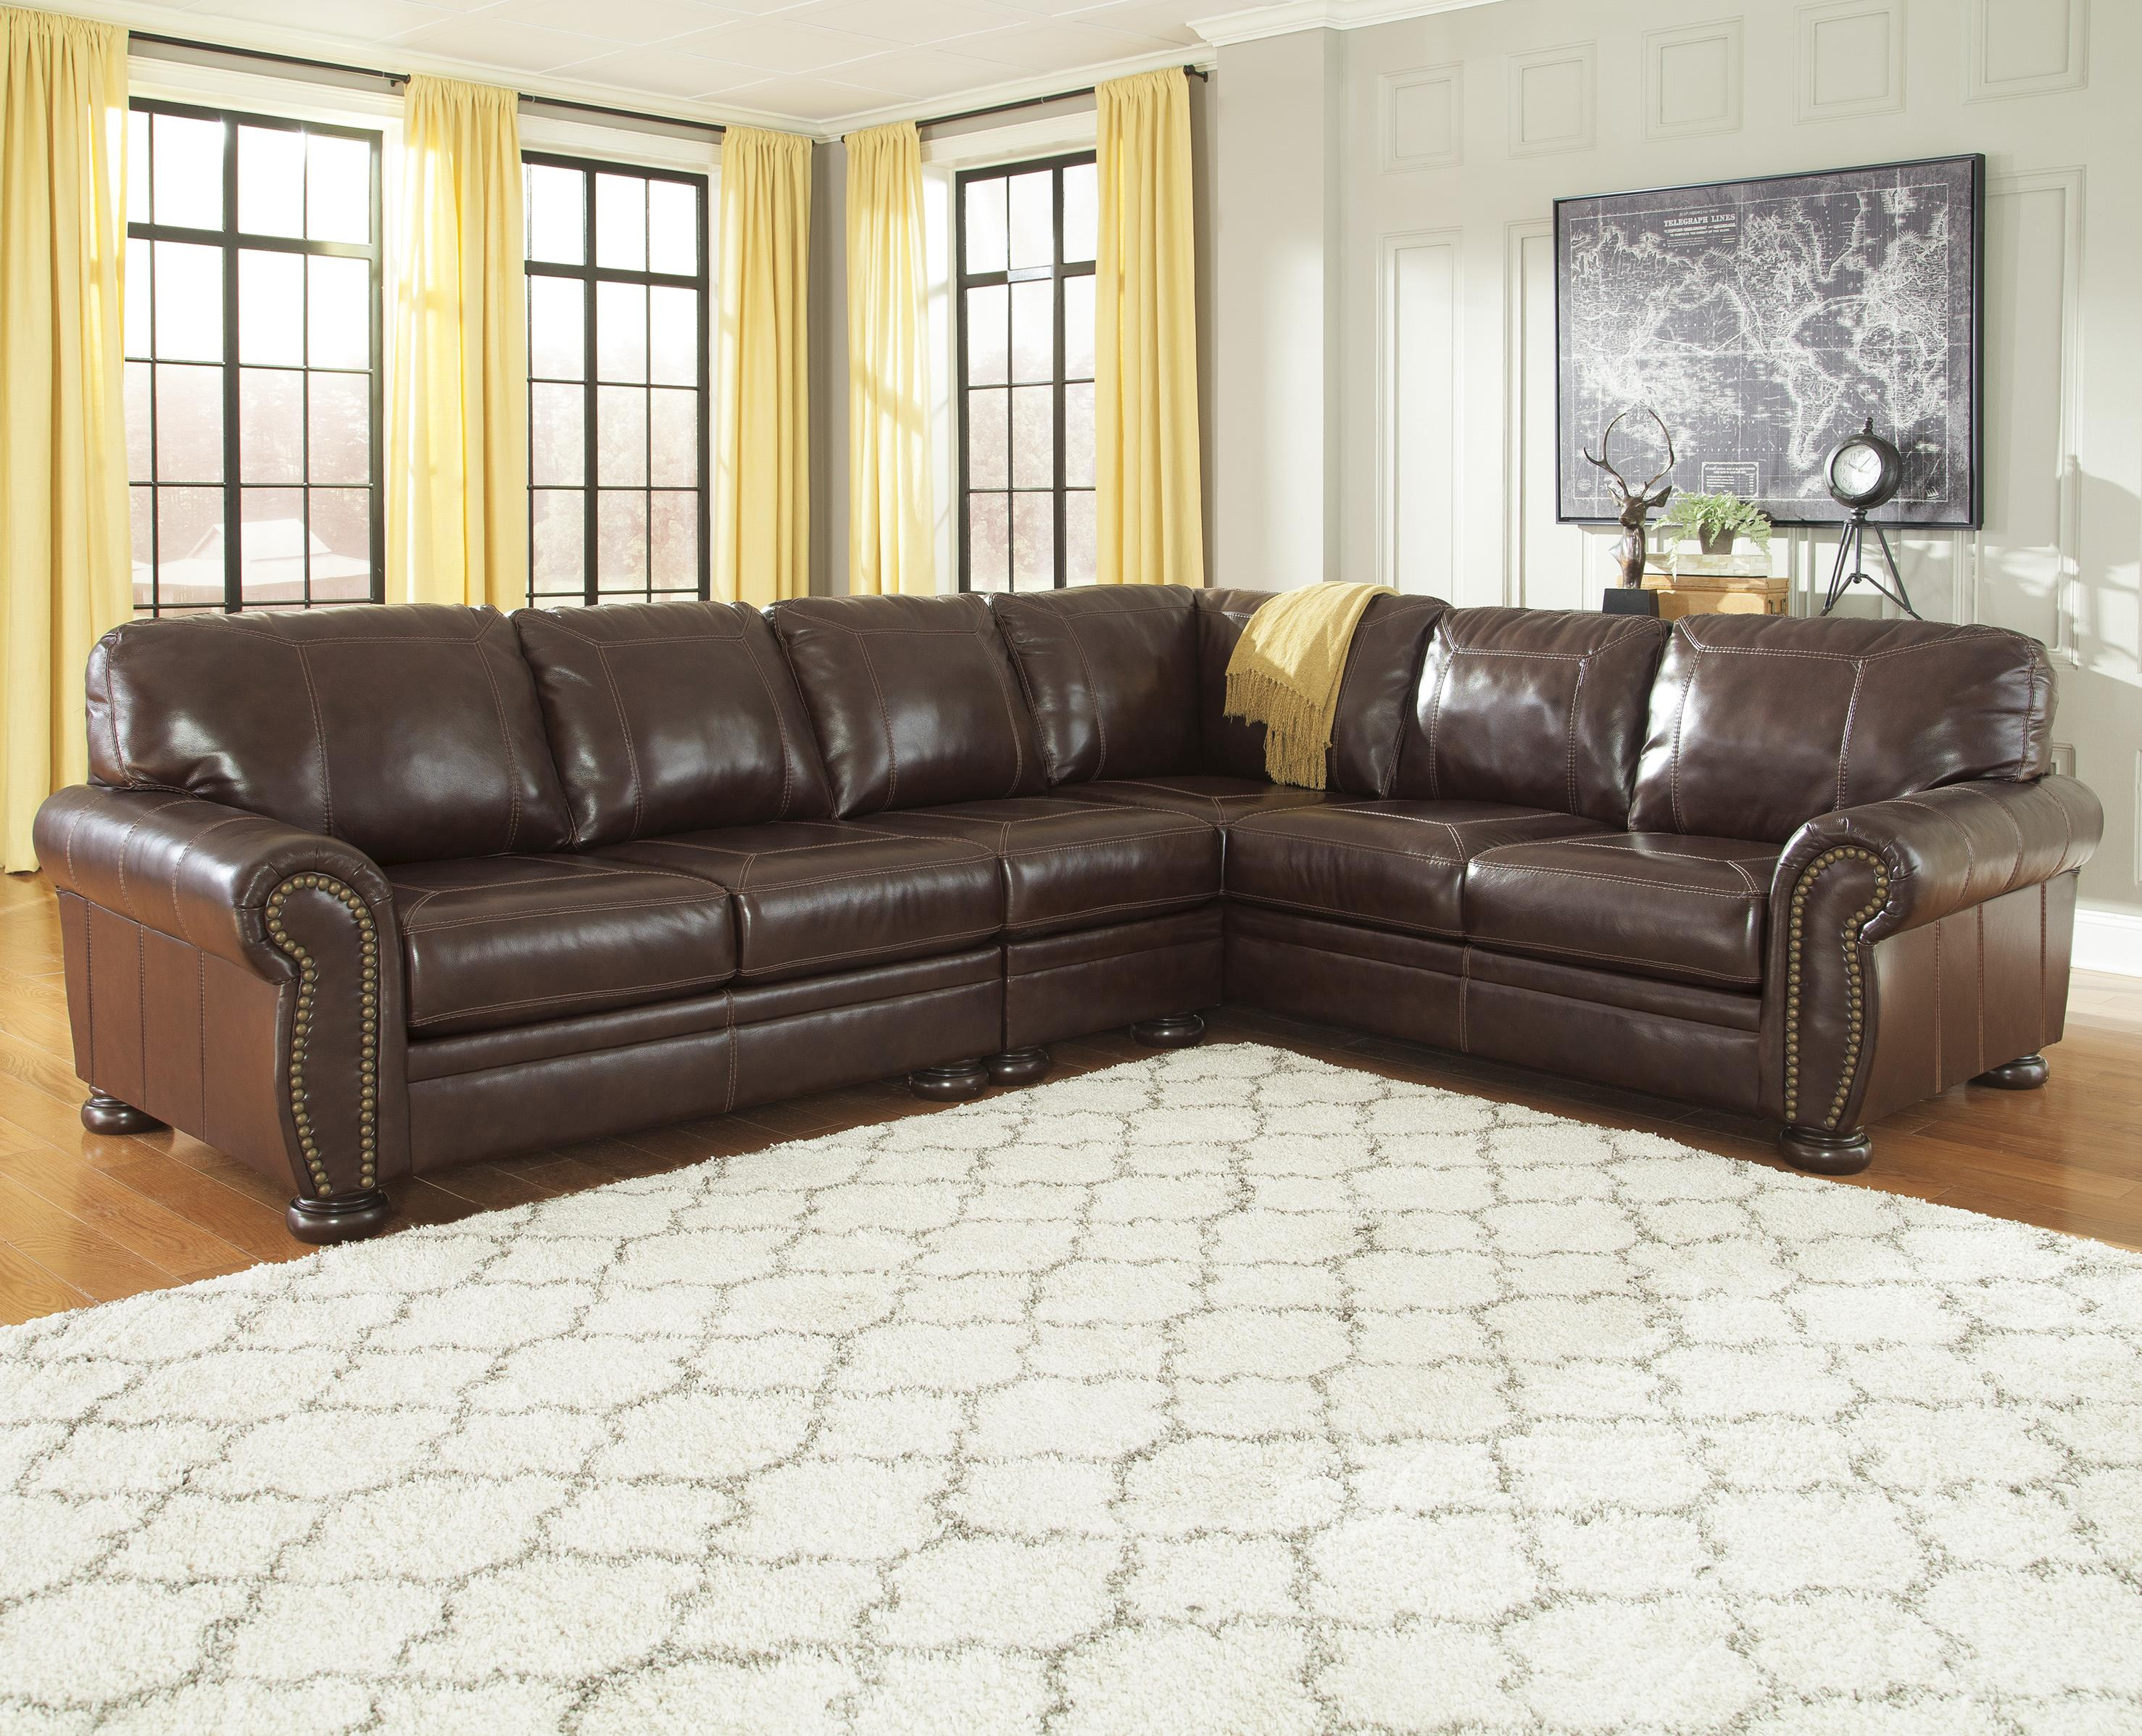 Signature design by ashley francesco 3 piece leather match for 3 piece brown leather sectional sofa